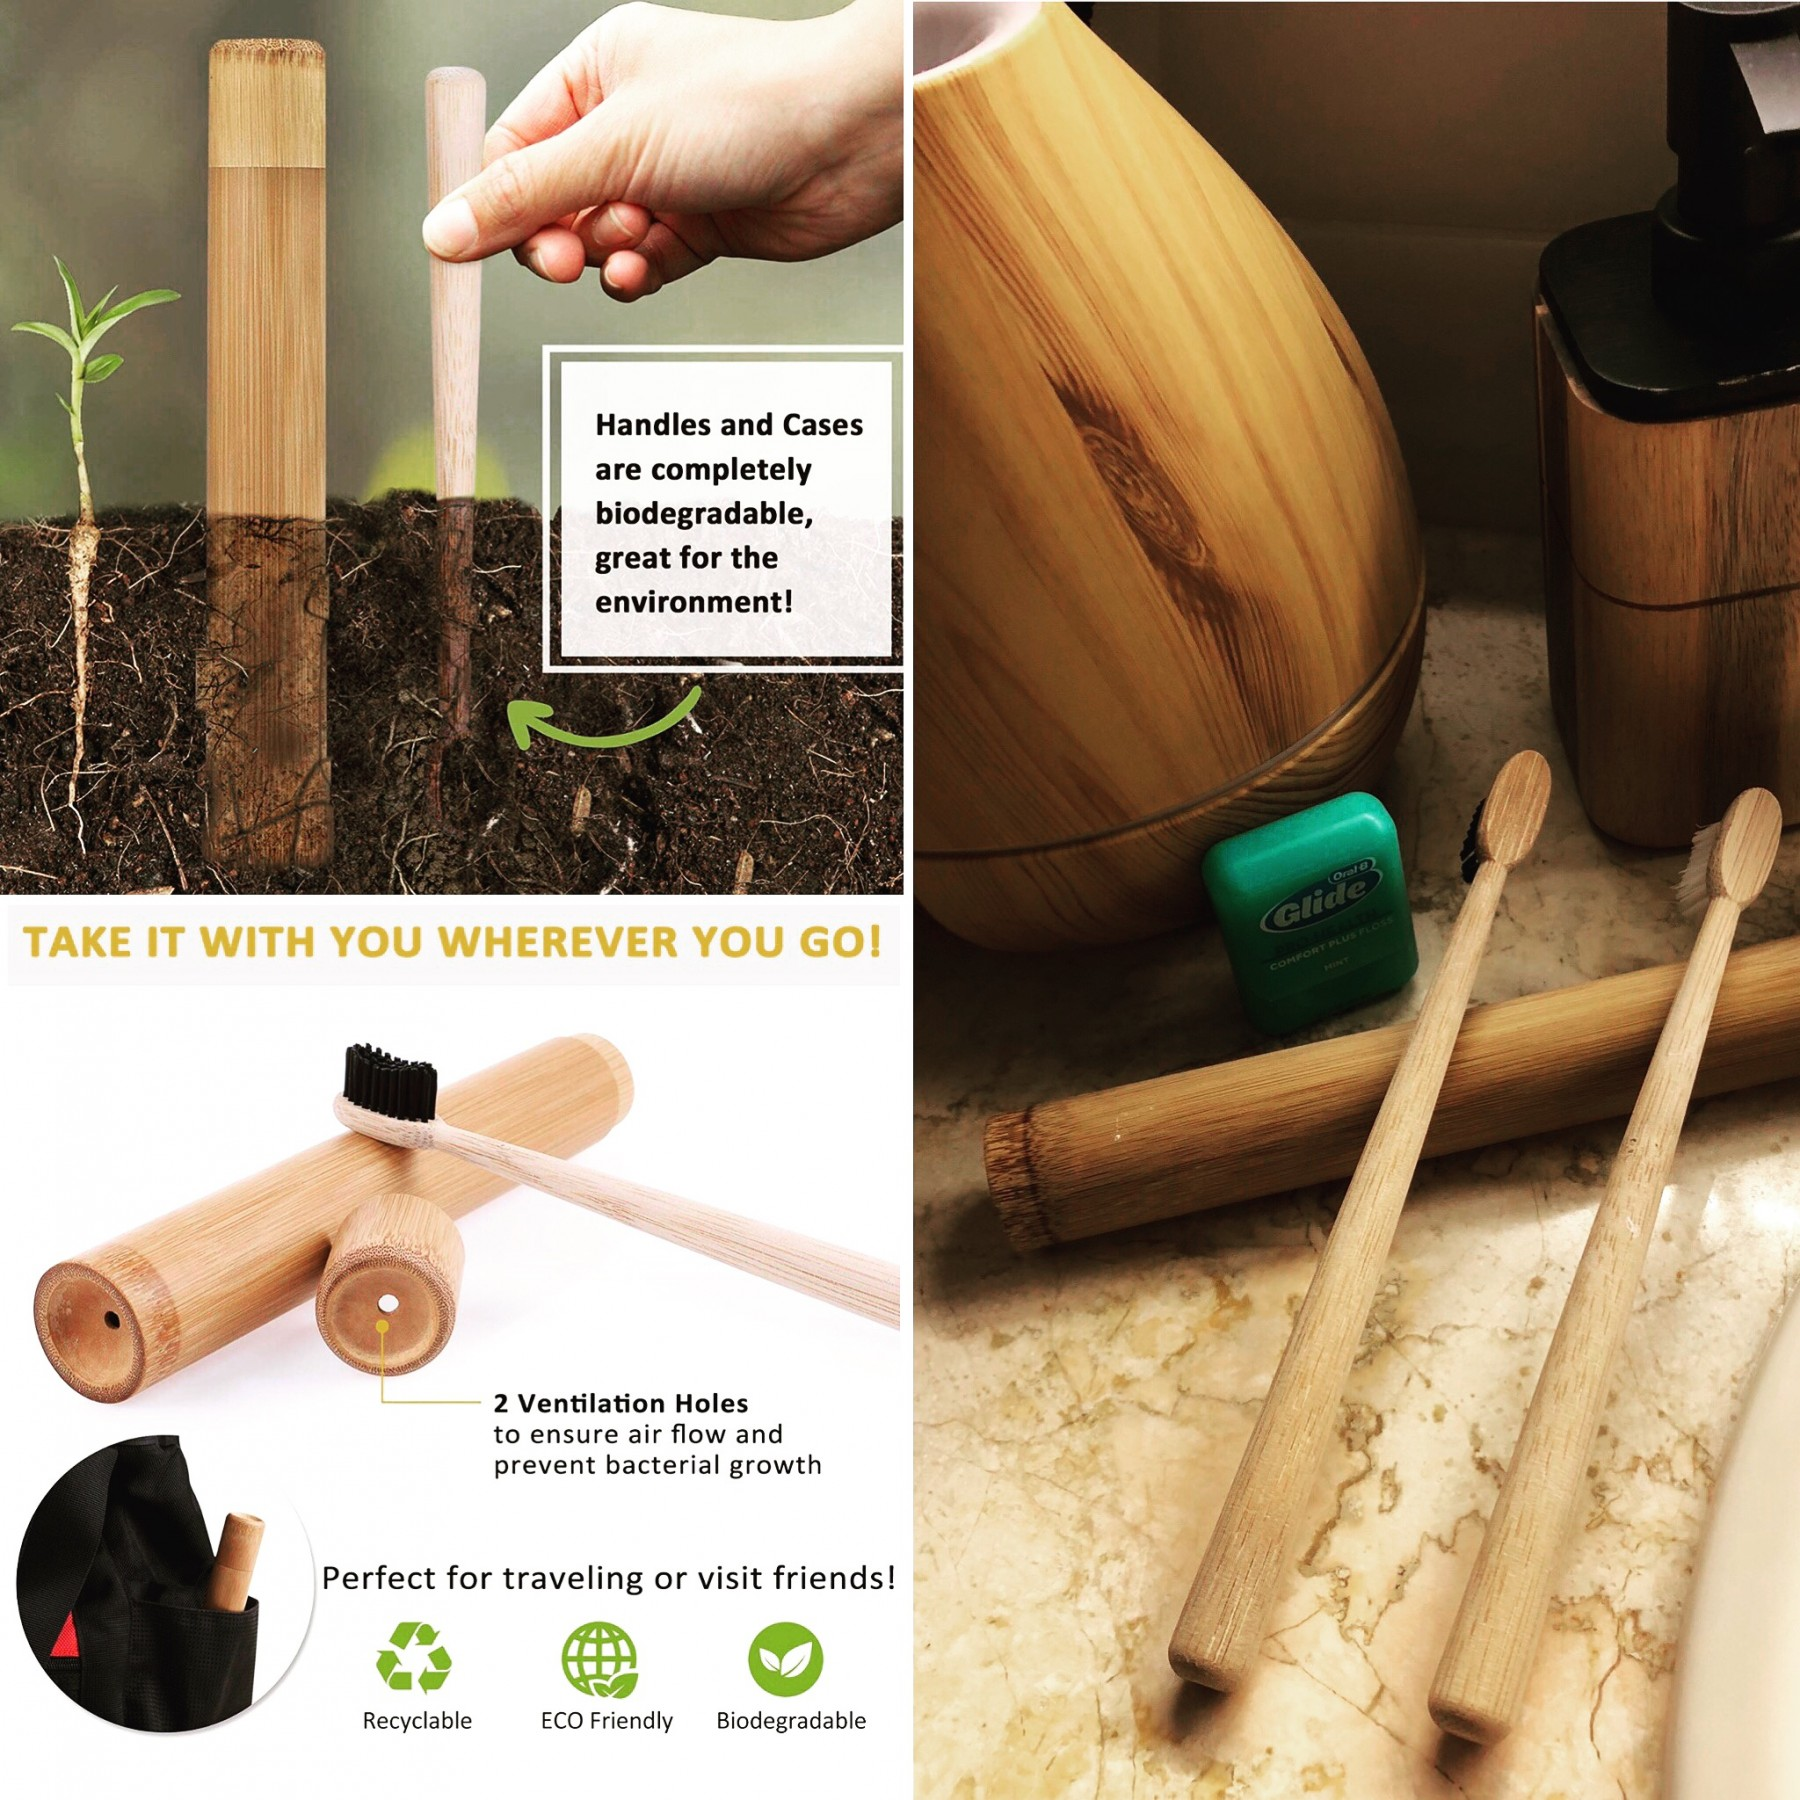 Say goodbye to plastic and go bamboo!